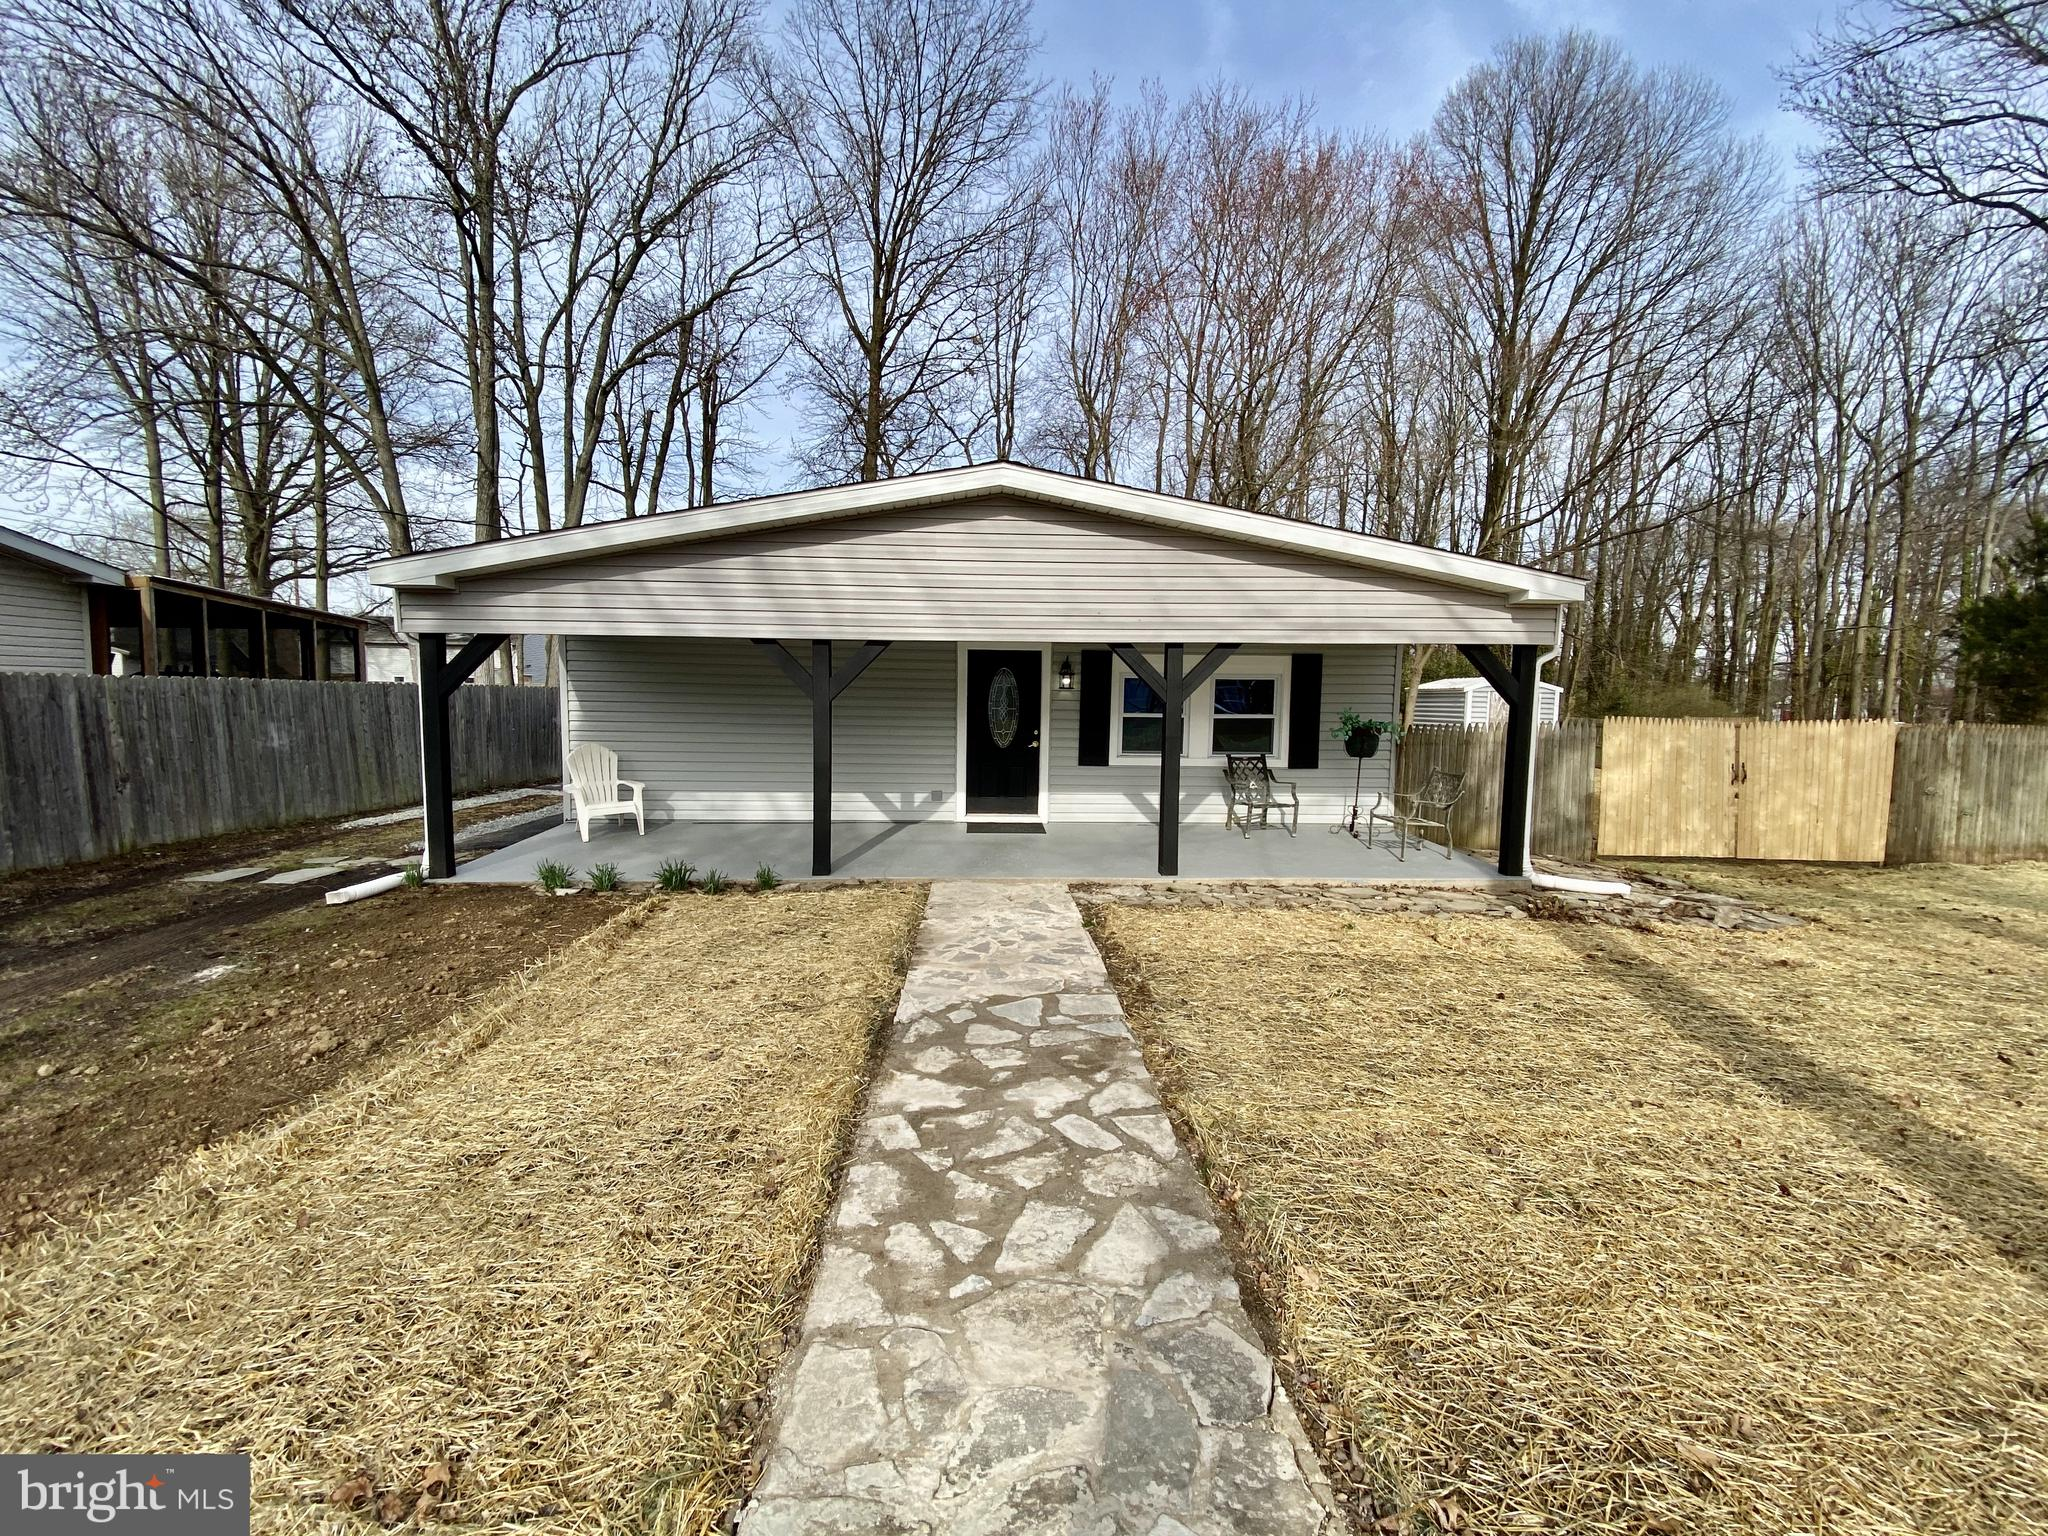 Visit this home virtually: http://www.vht.com/434046195/IDXS - Enjoy one story living at its finest